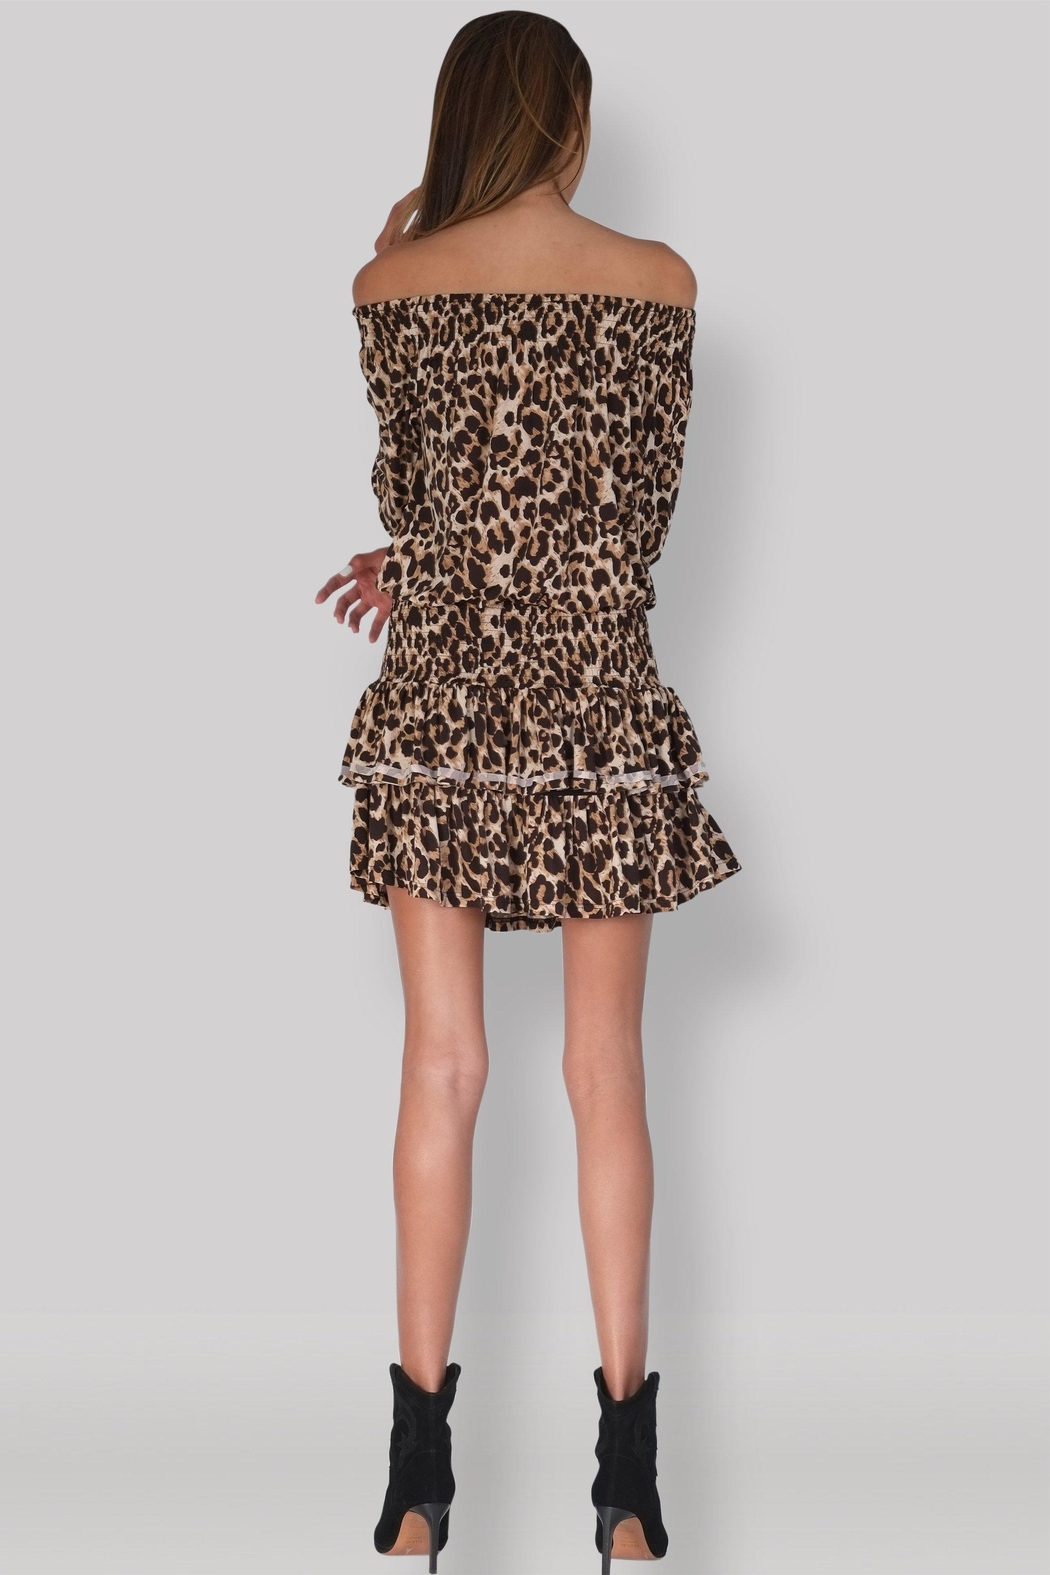 Muche et Muchette Ellyn Dress - Leopard - Side Cropped Image